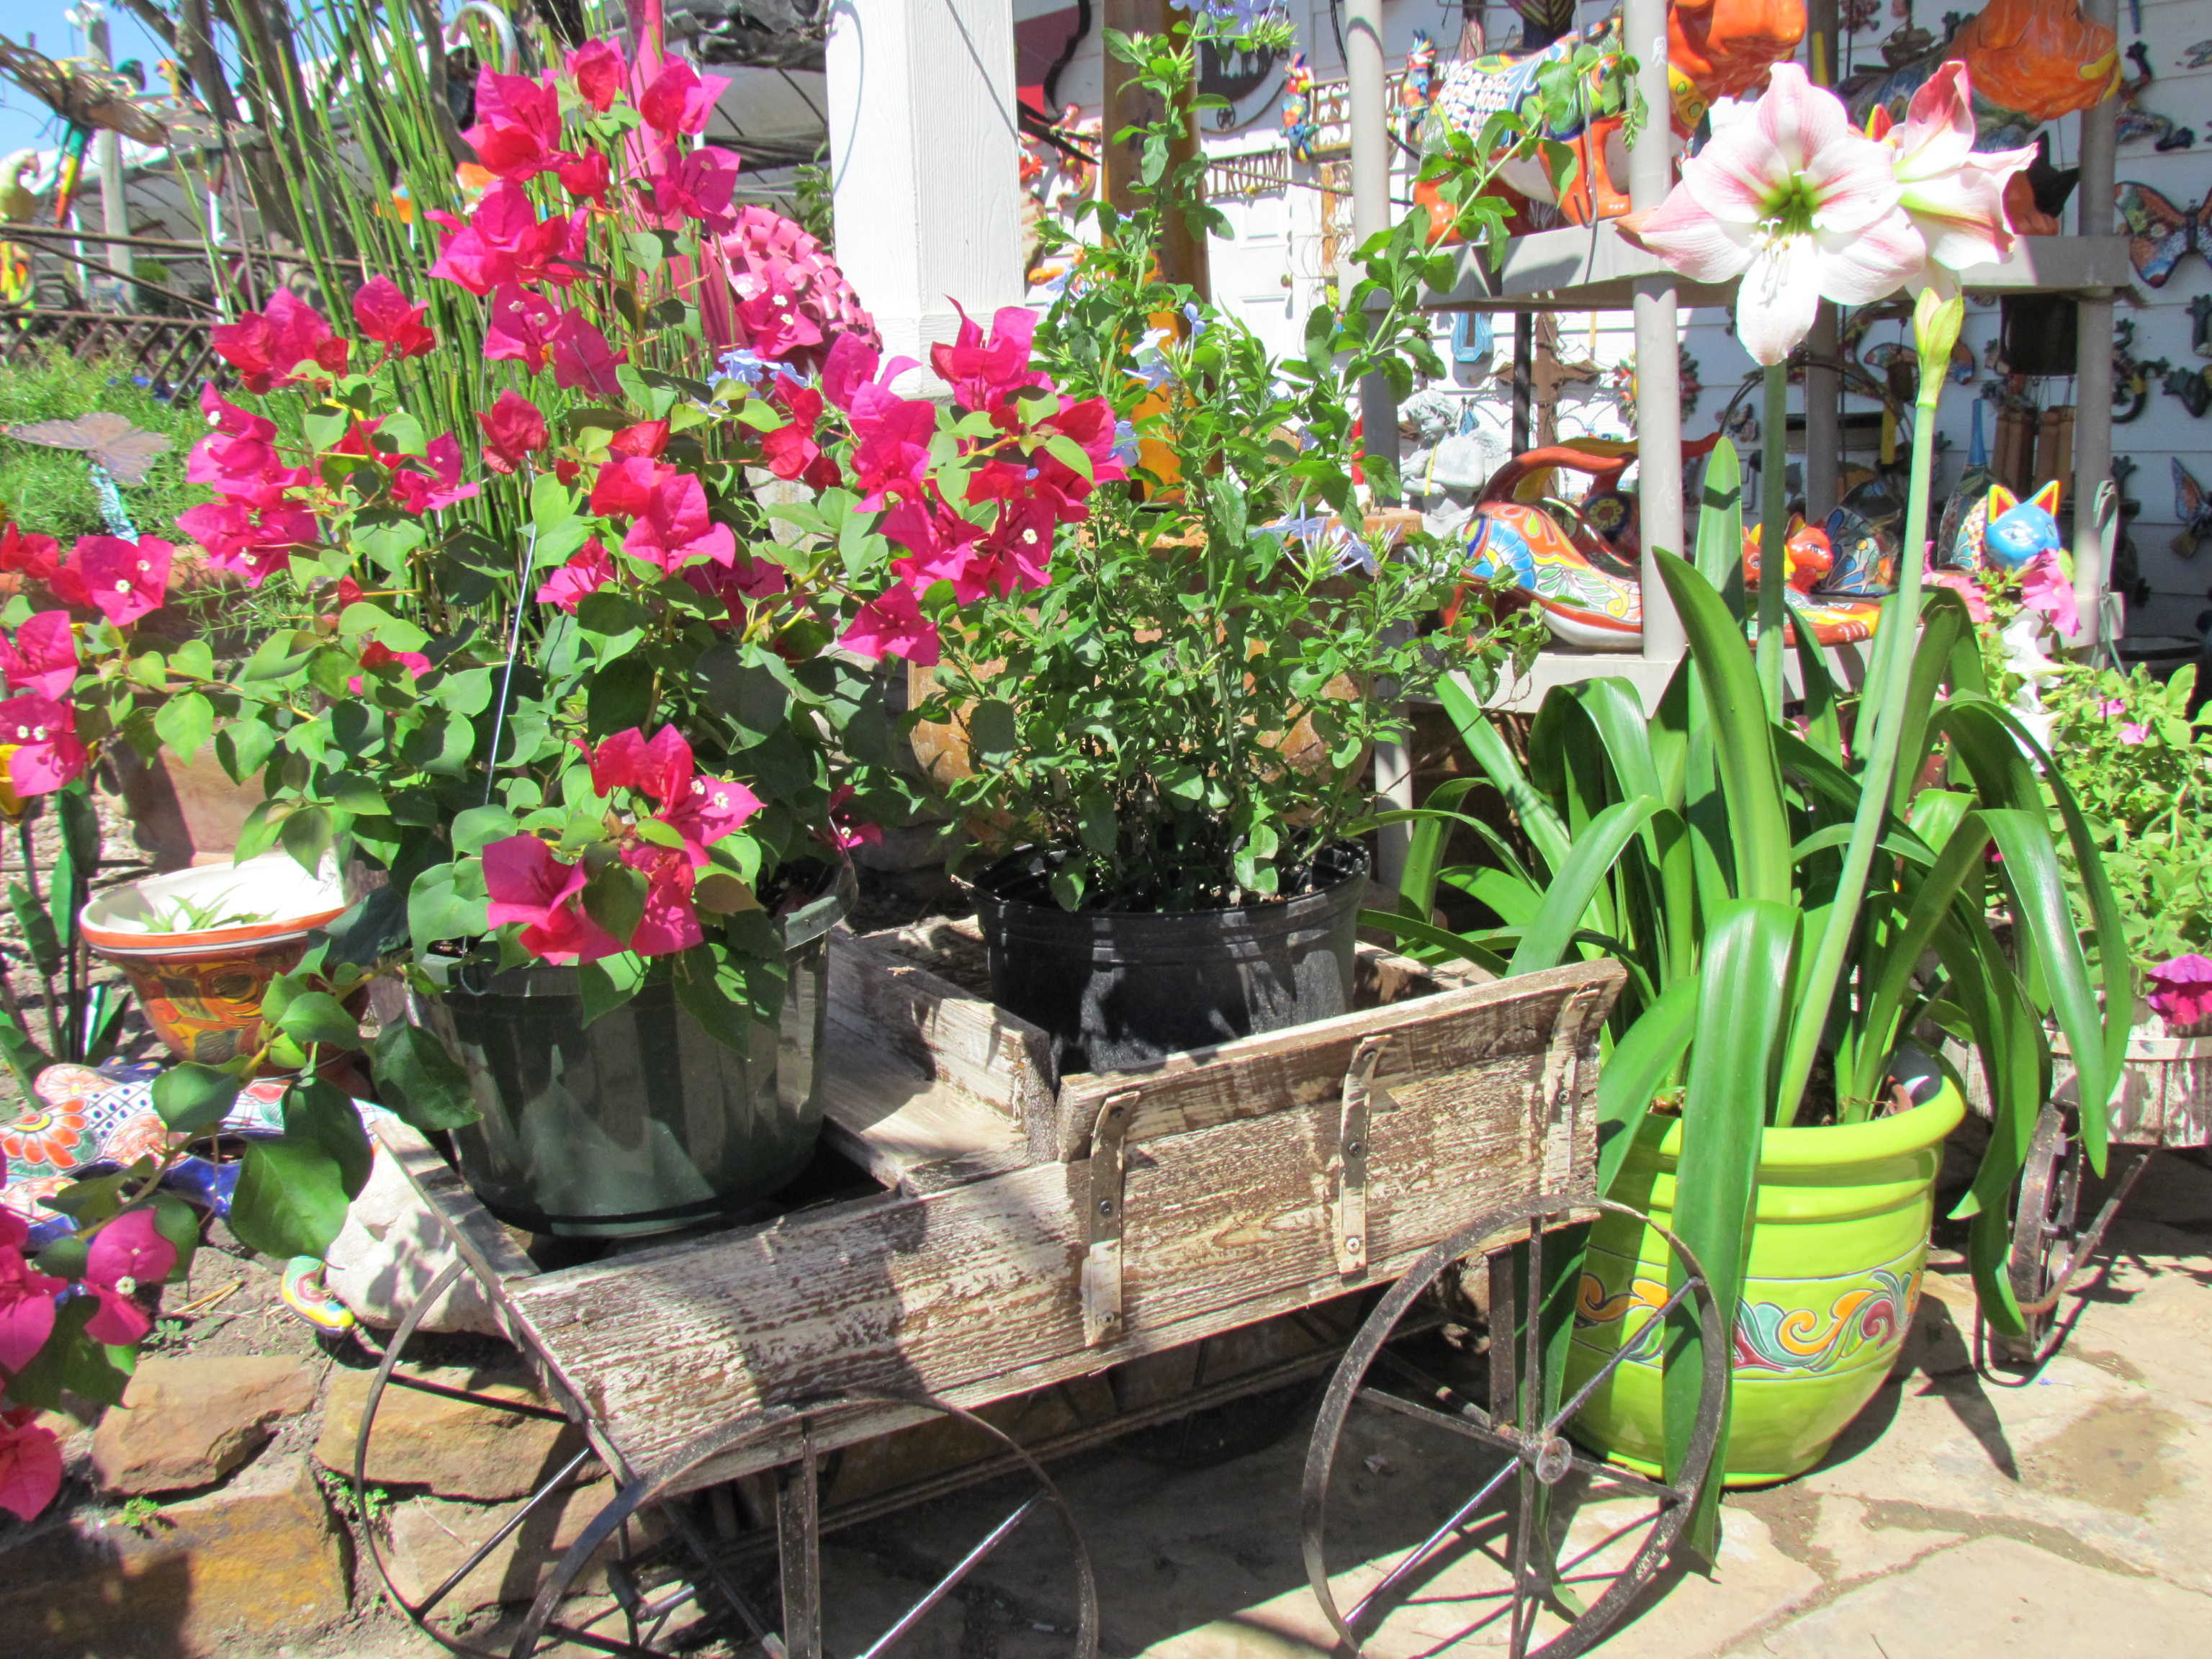 Wagon of flowers.